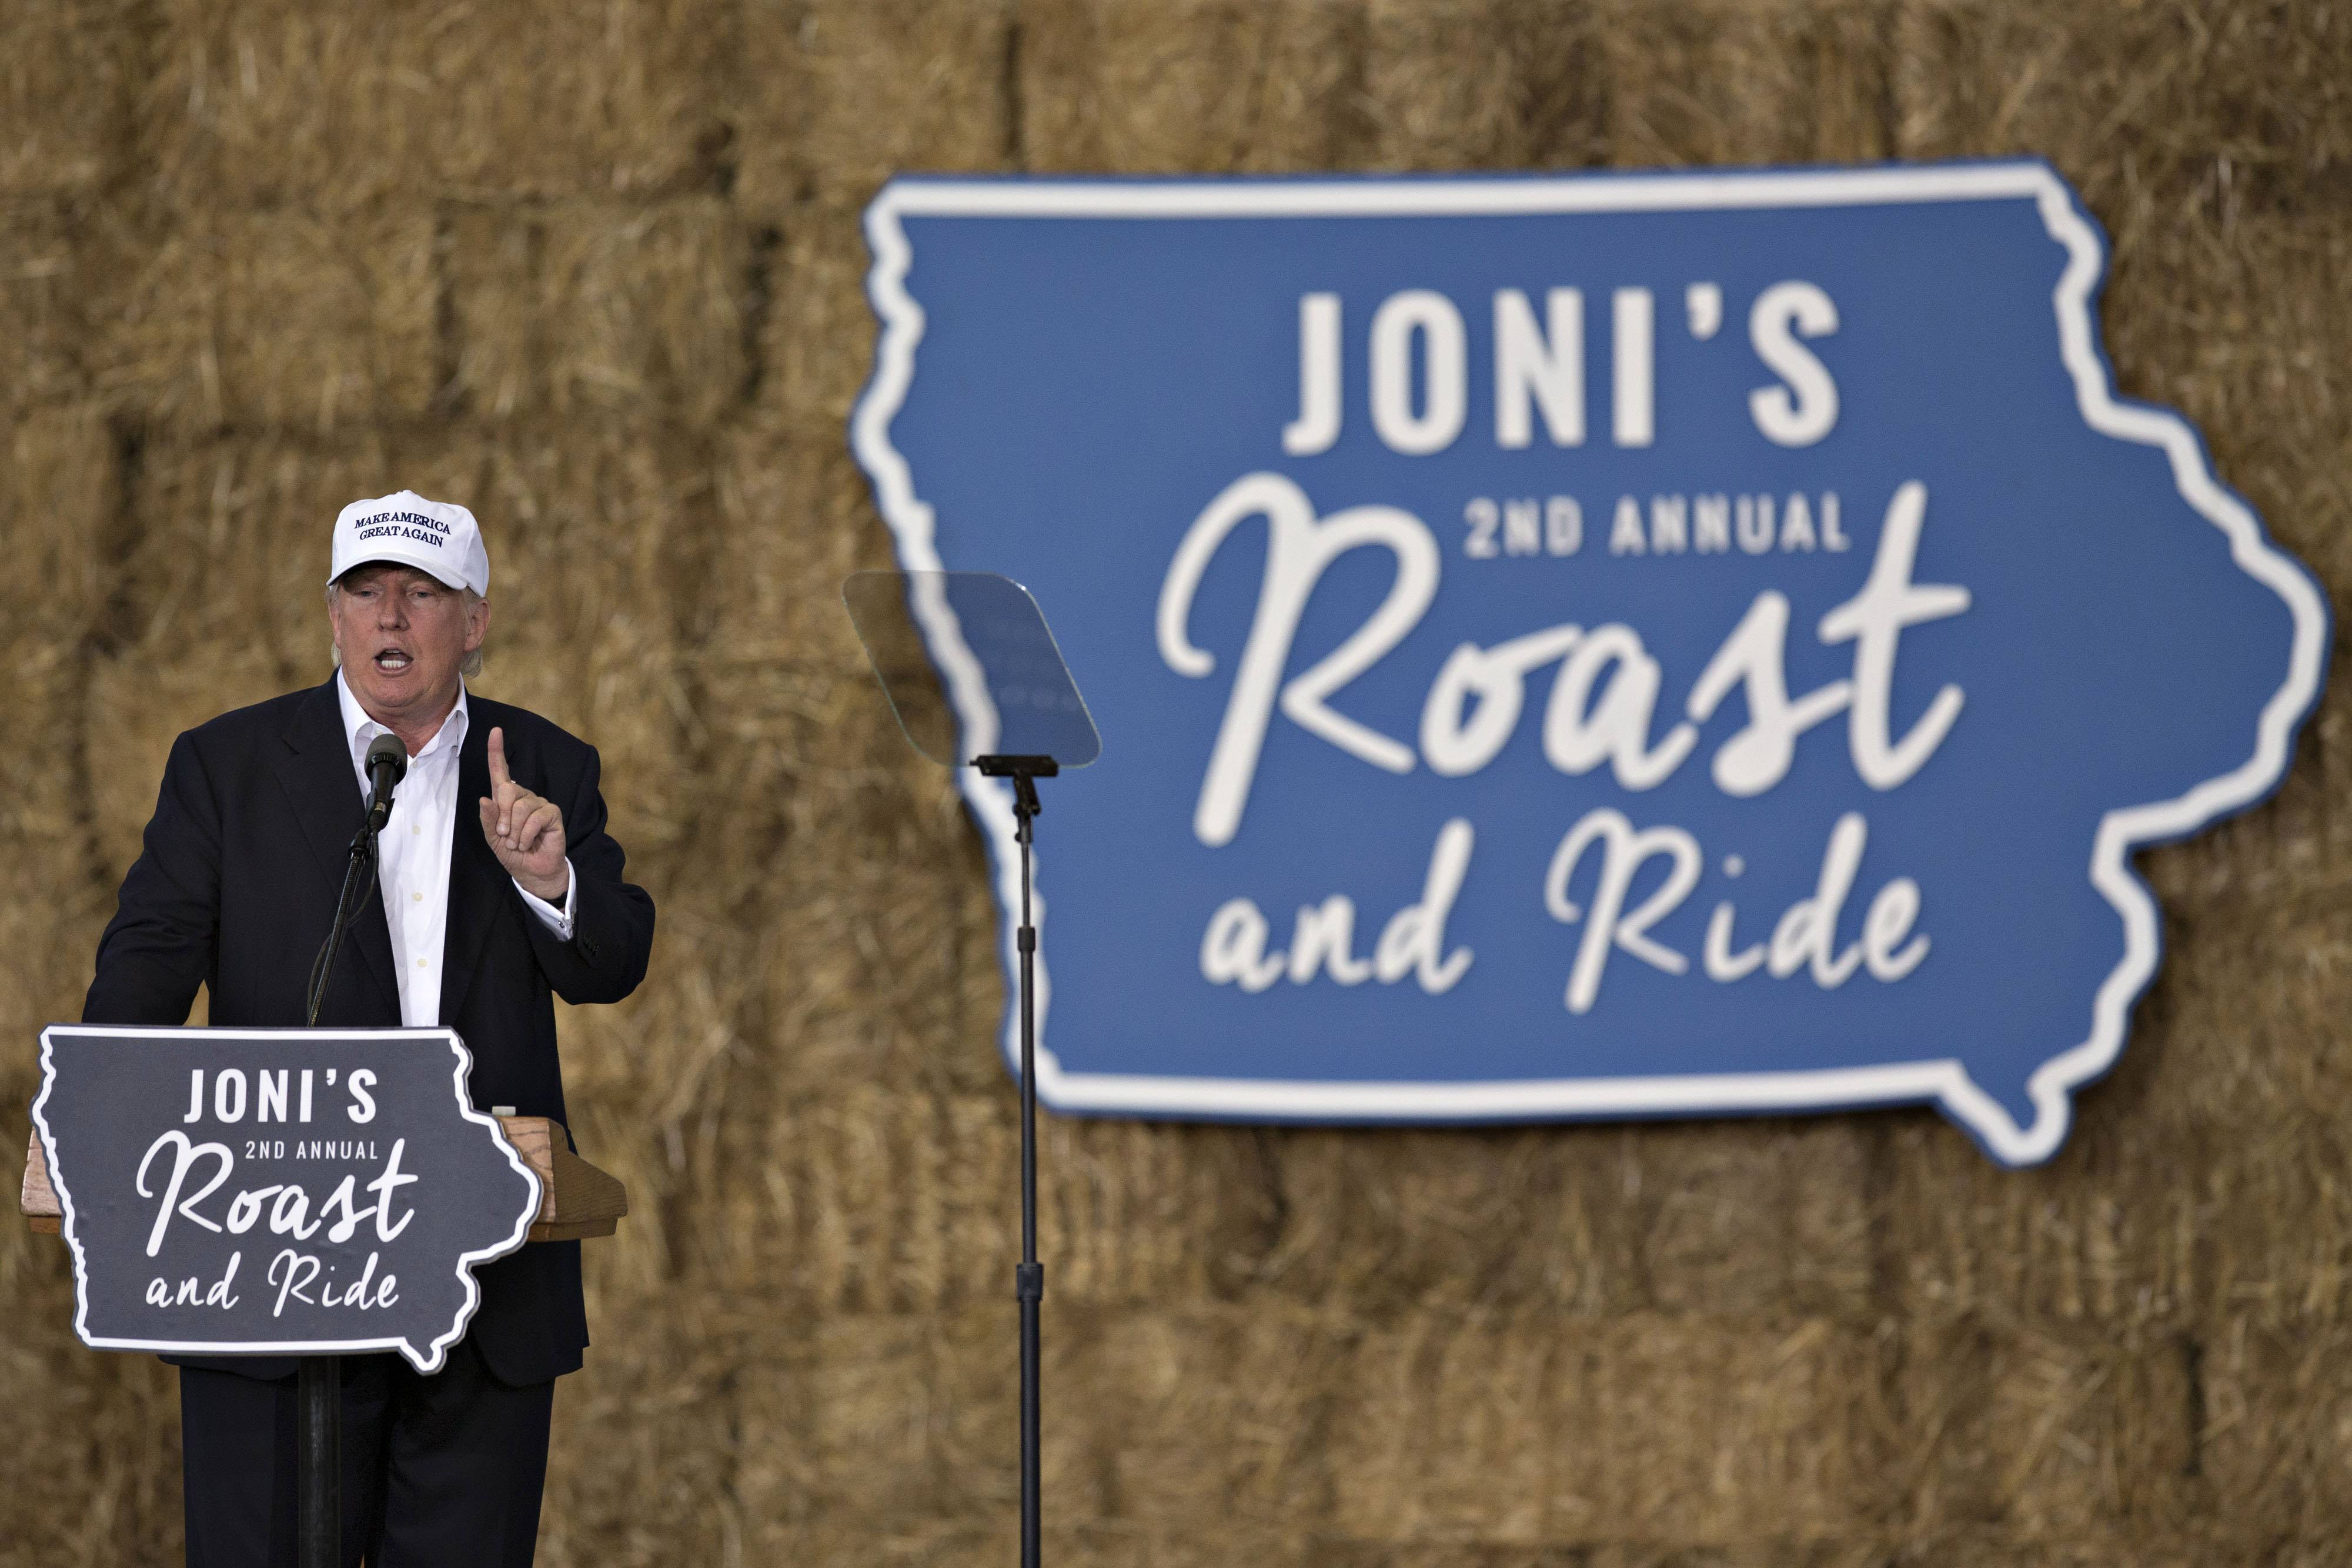 Republican presidential candidate Donald Trump speaks during the 2nd annual Roast and Ride in Des Moines, Iowa.